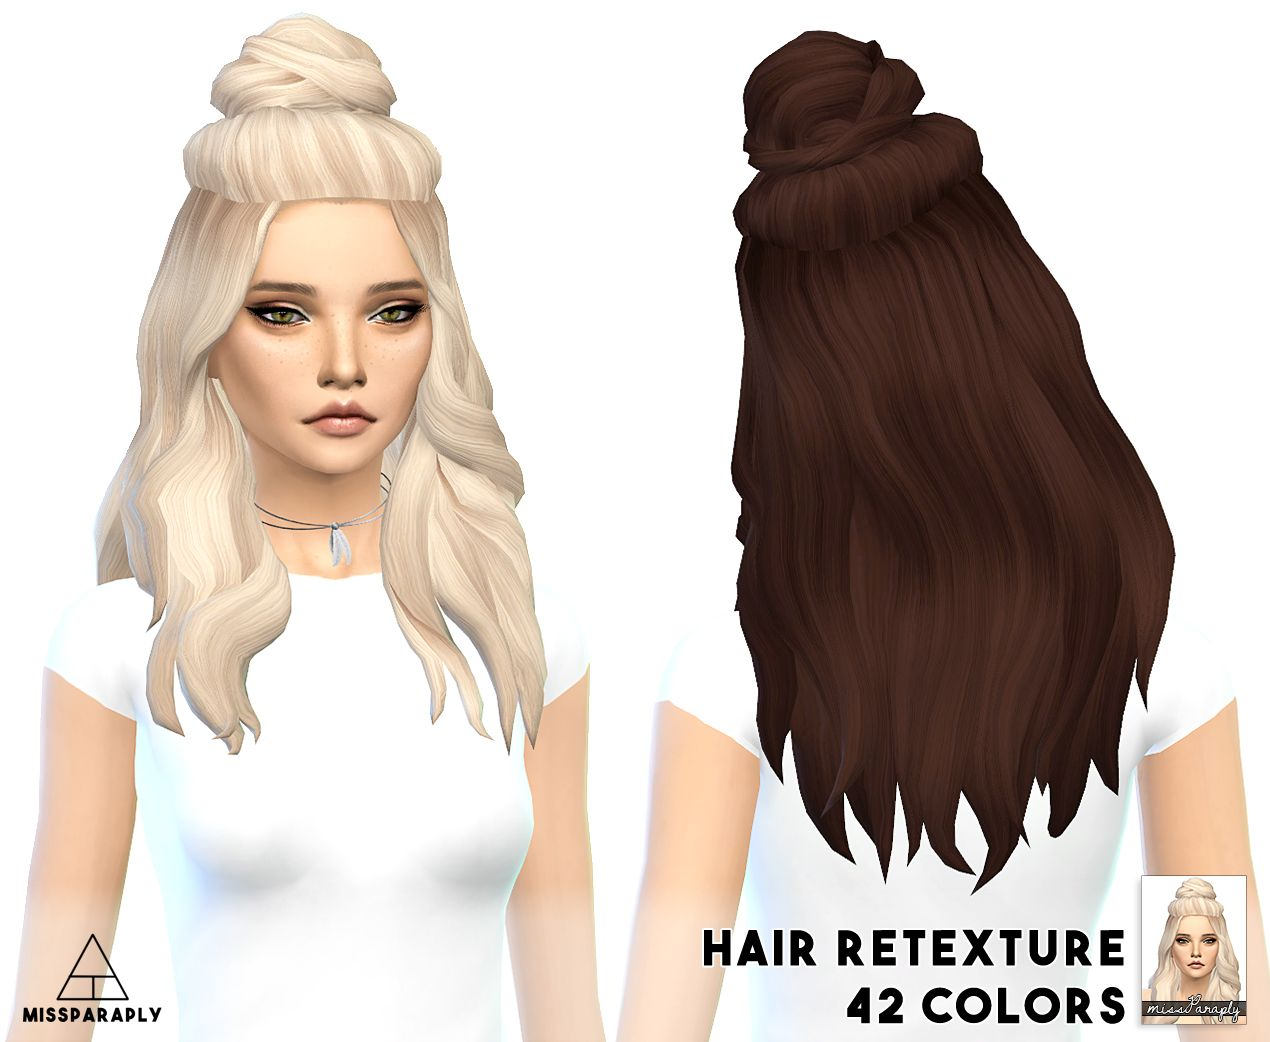 The sims 4 hairstyles cc - Miss Paraply Vellichor Hairstyle Retextured Sims 4 Hairs Http Sims4hairs